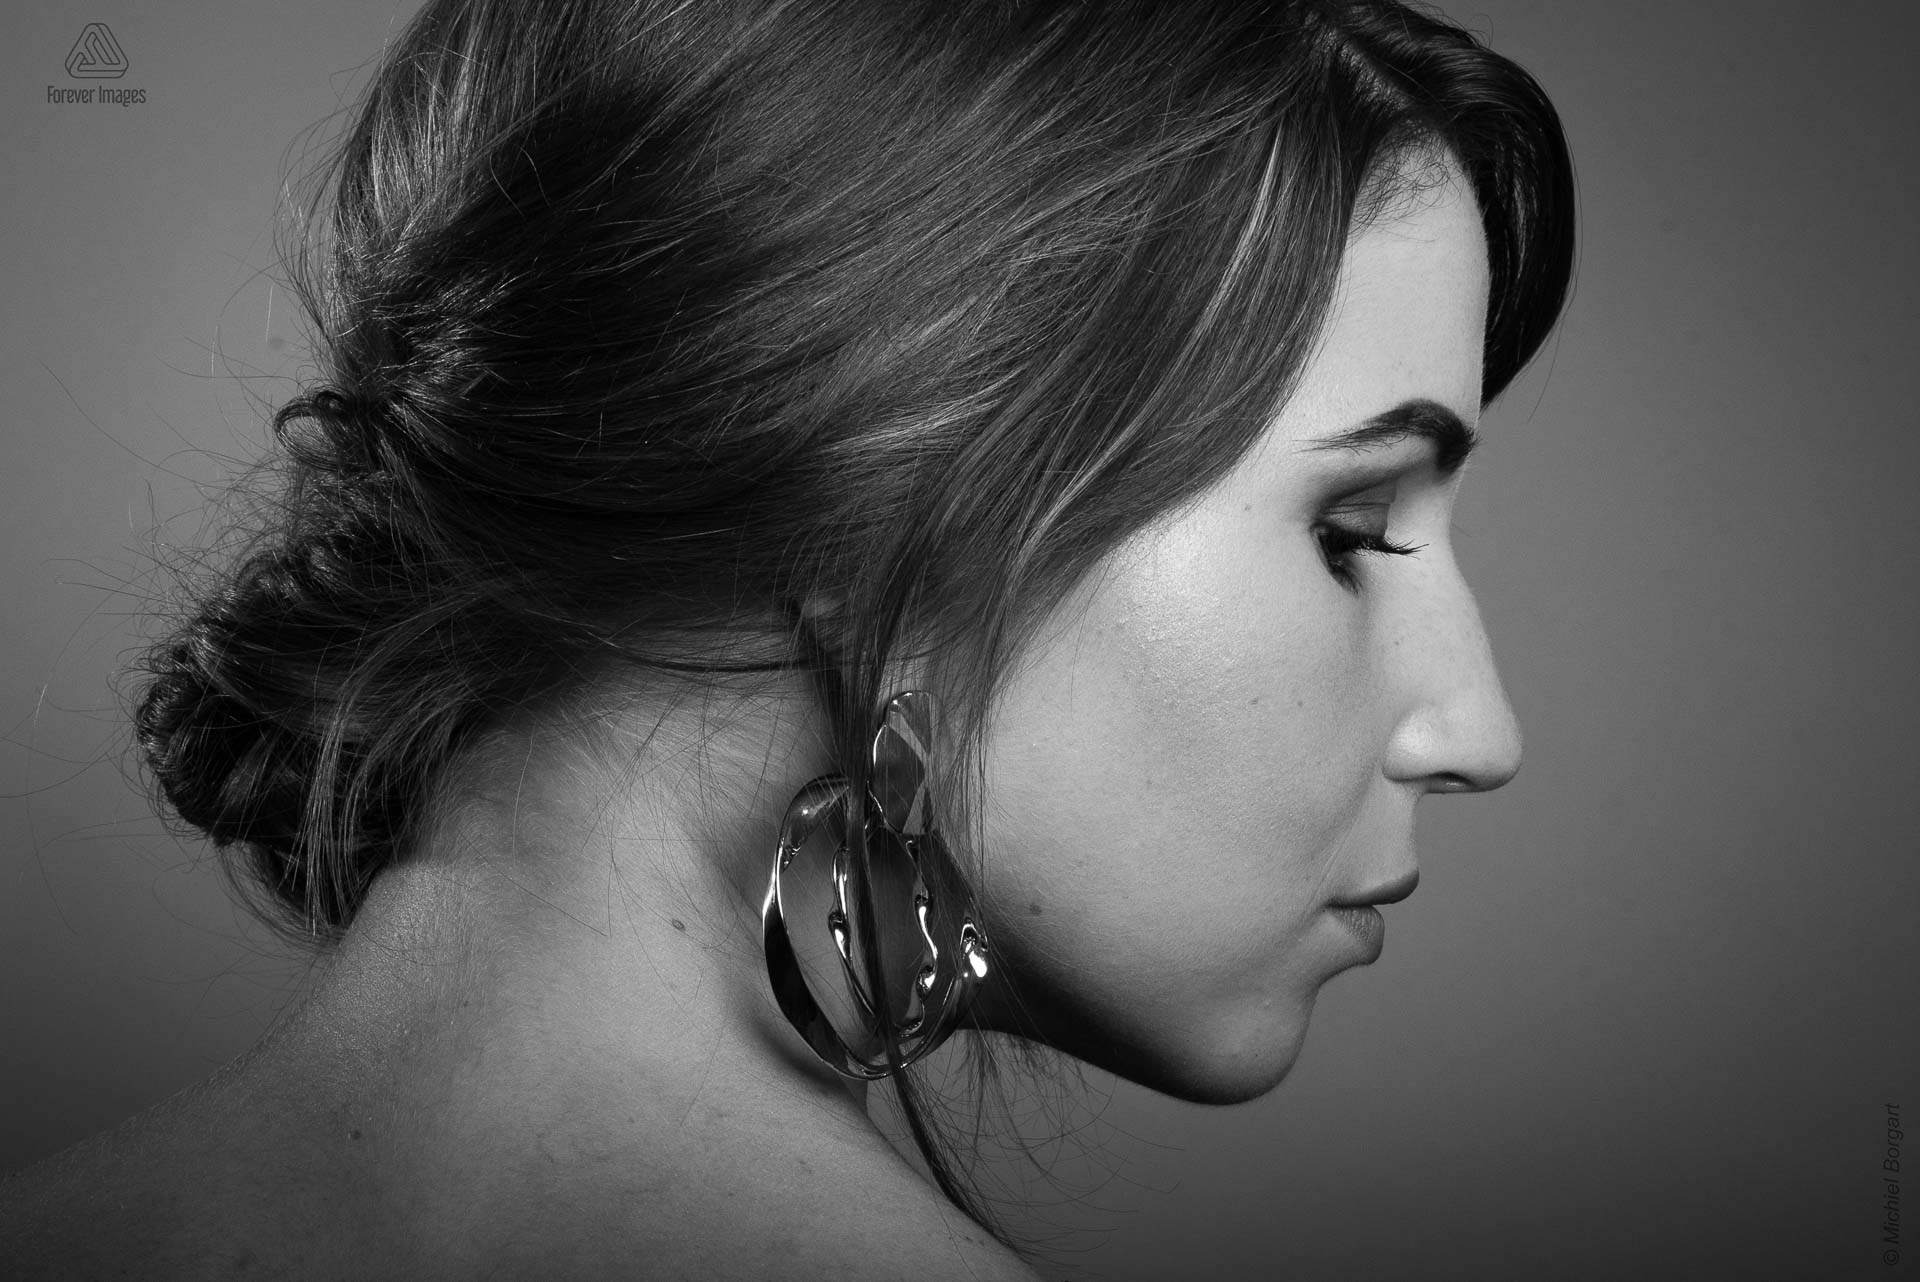 Portrait photo black and white young lady big earrings looking to the side | Noah Doornebal | Portrait Photographer Michiel Borgart - Forever Images.